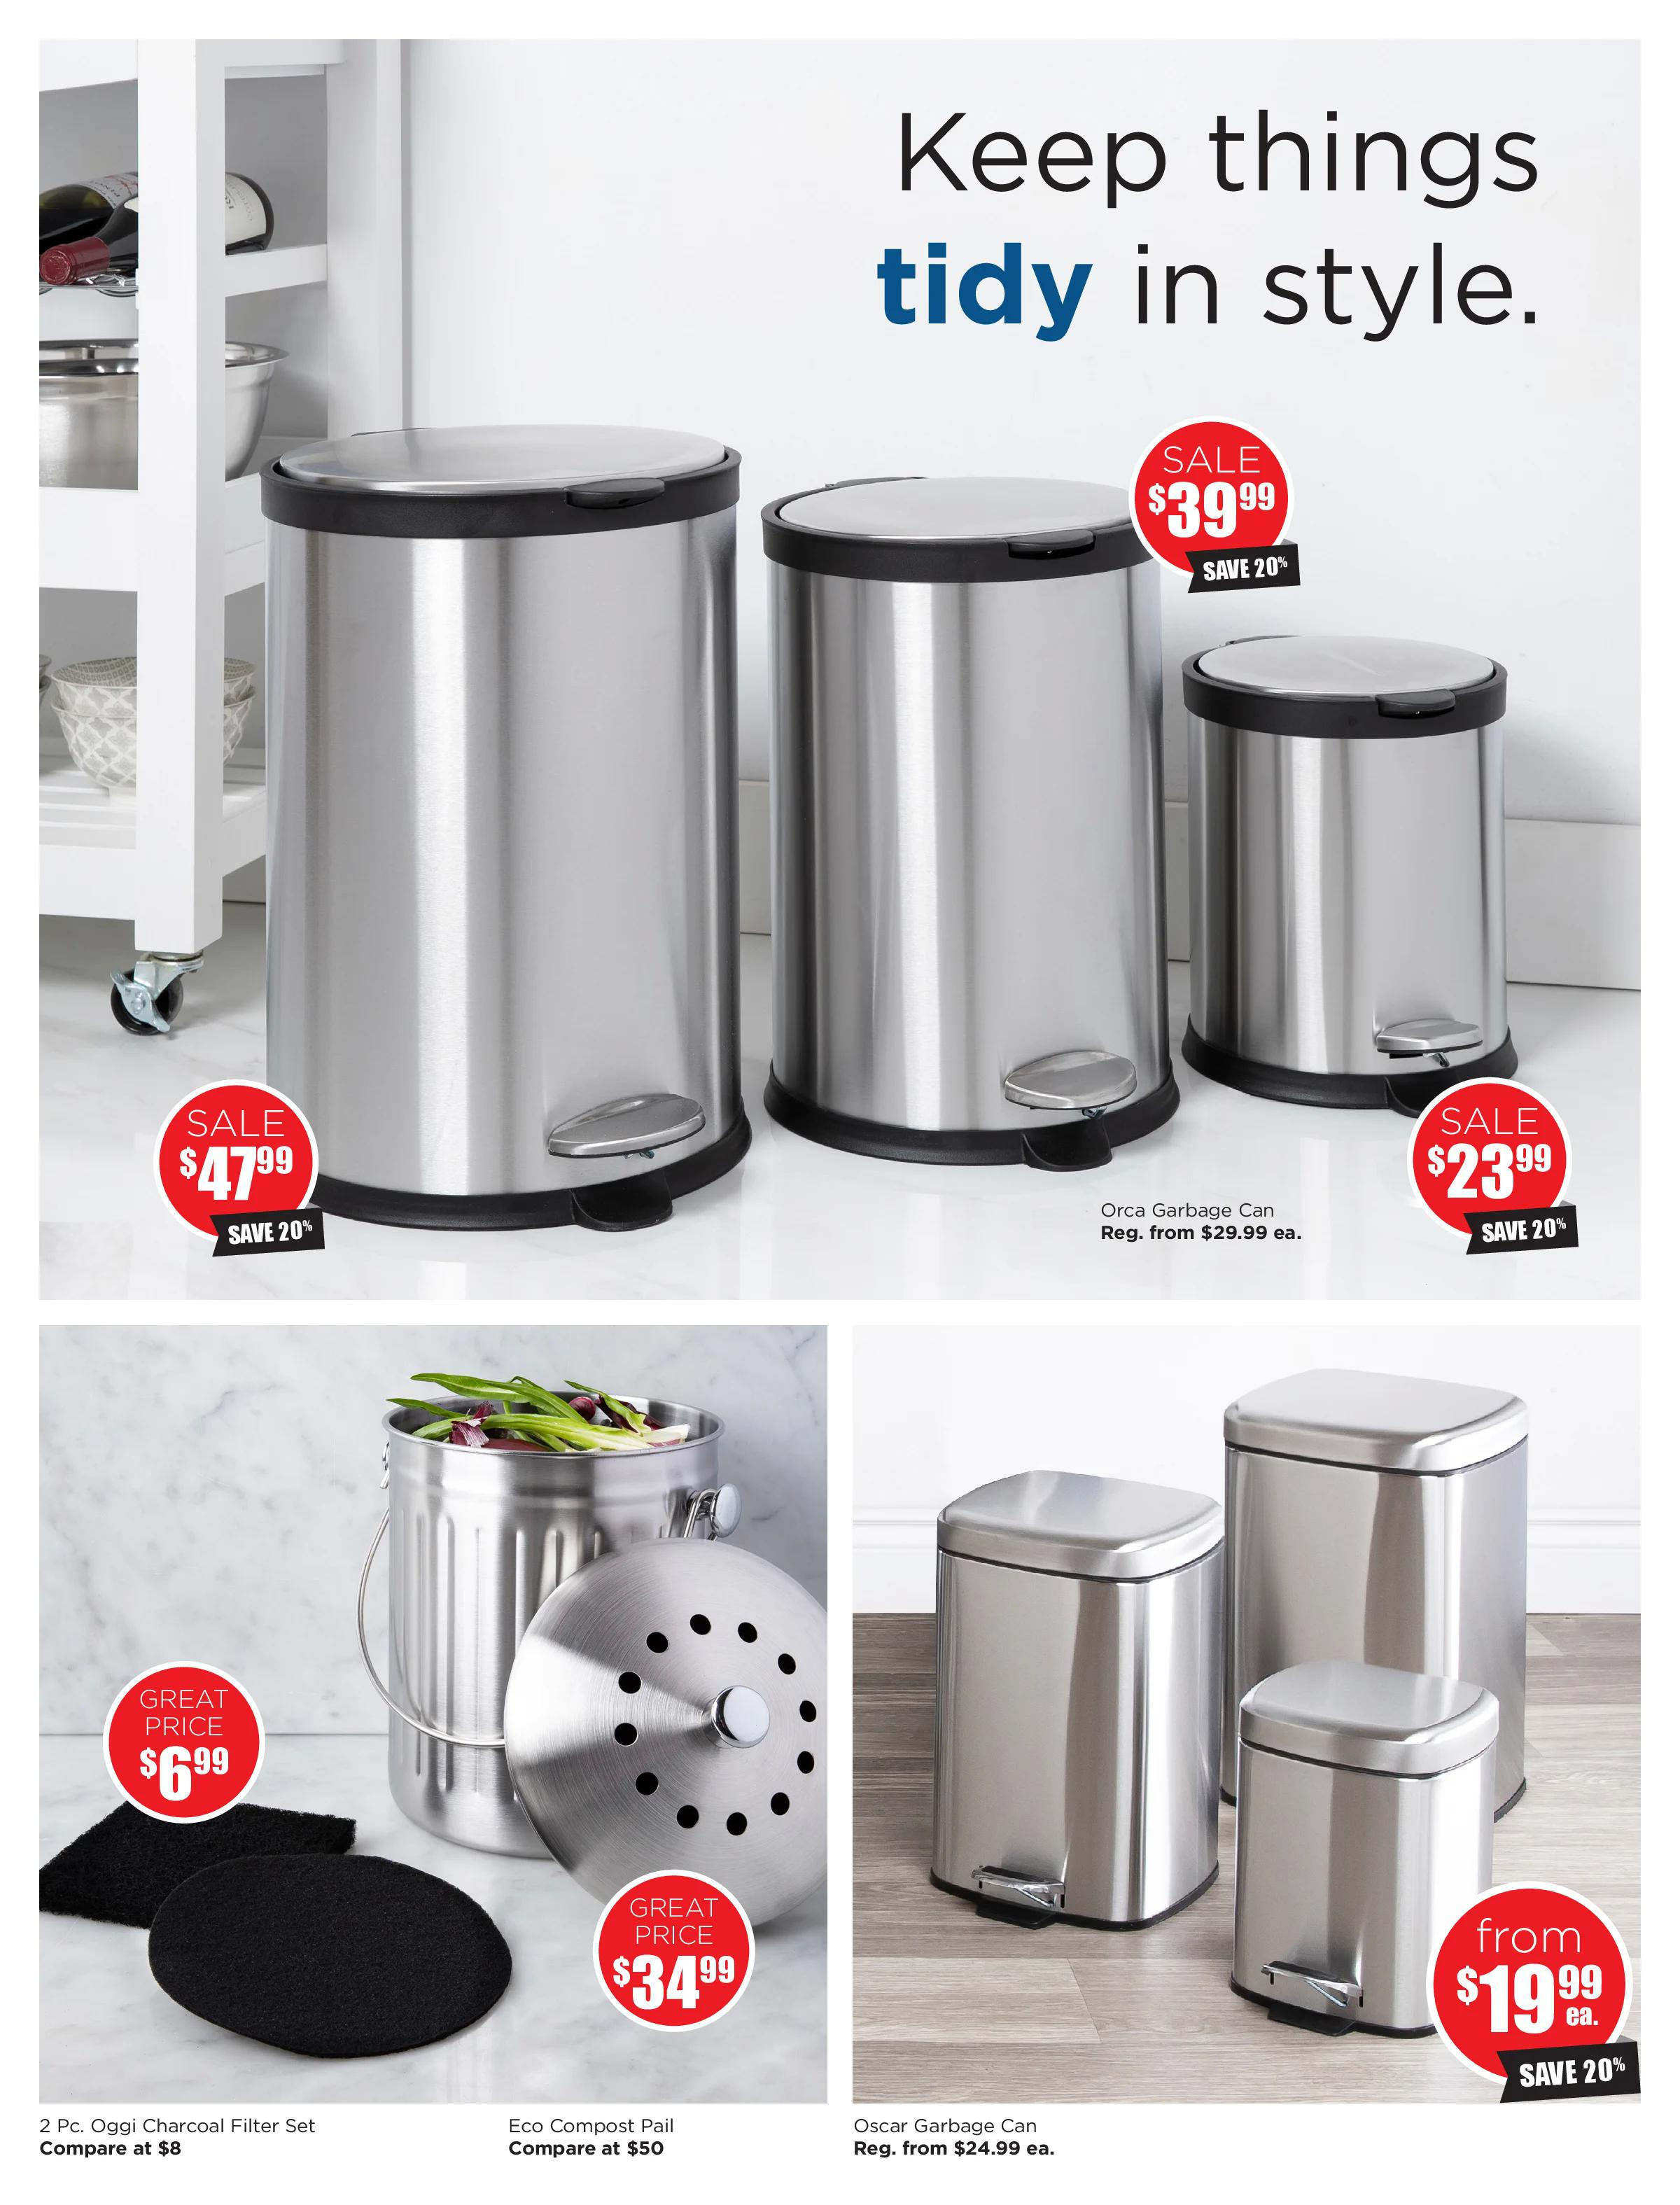 Kitchen Stuff Plus - Monthly Savings - Page 21